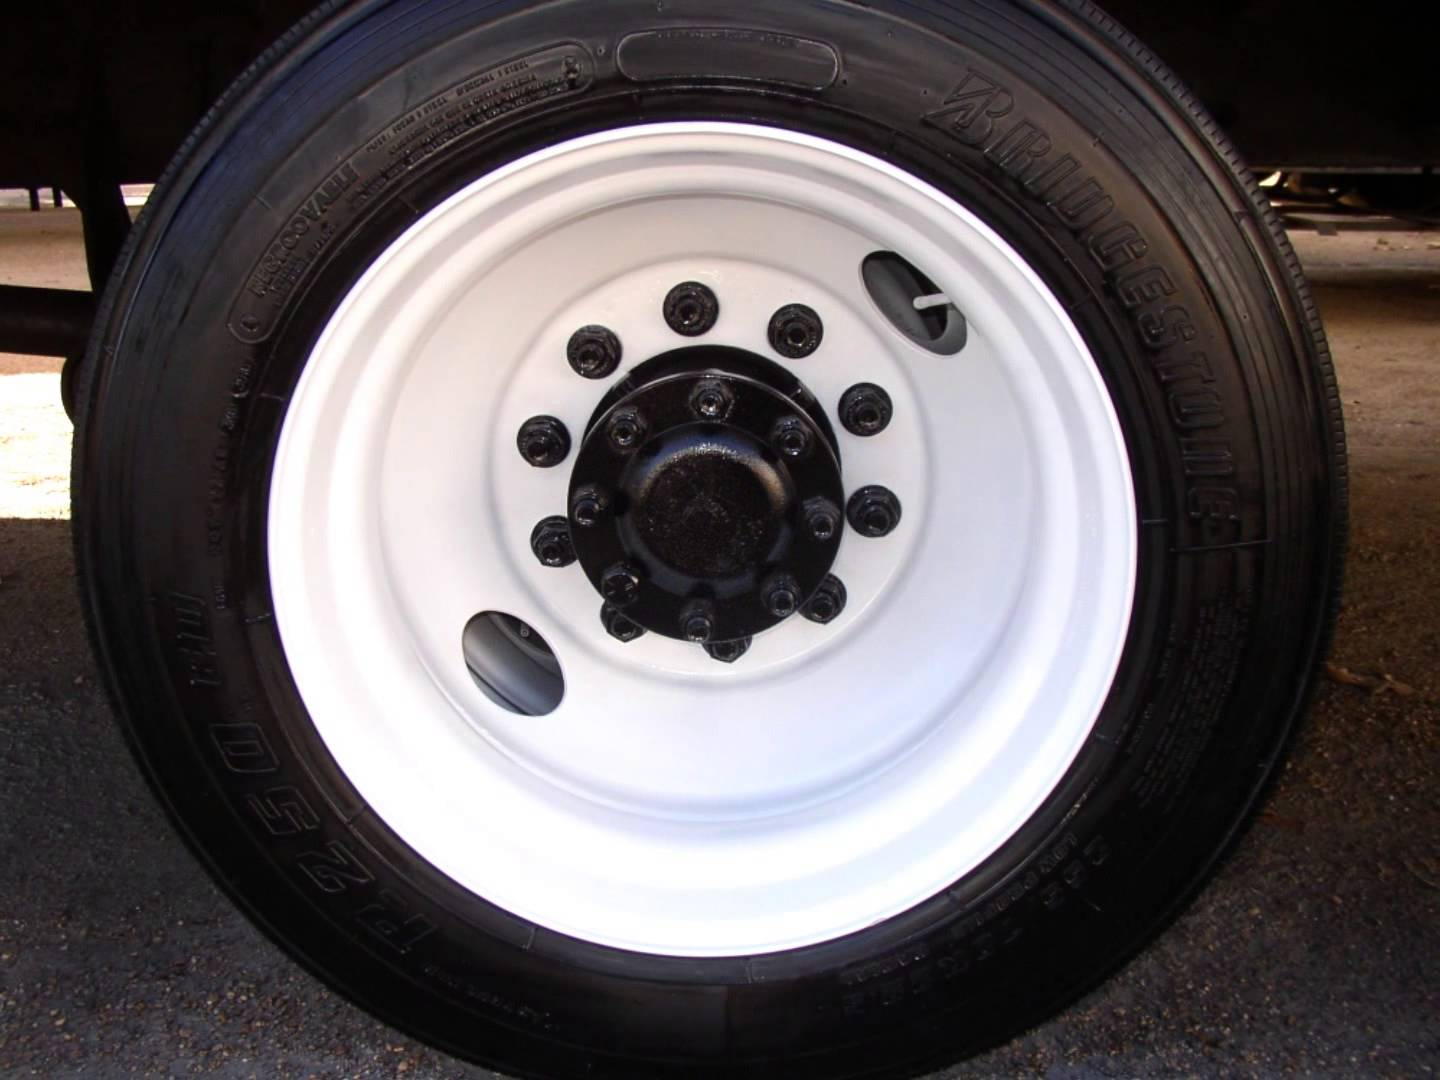 Painting Truck Bus Trailer Wheels With Tire Mask Kansas City Repair By Ustrailer